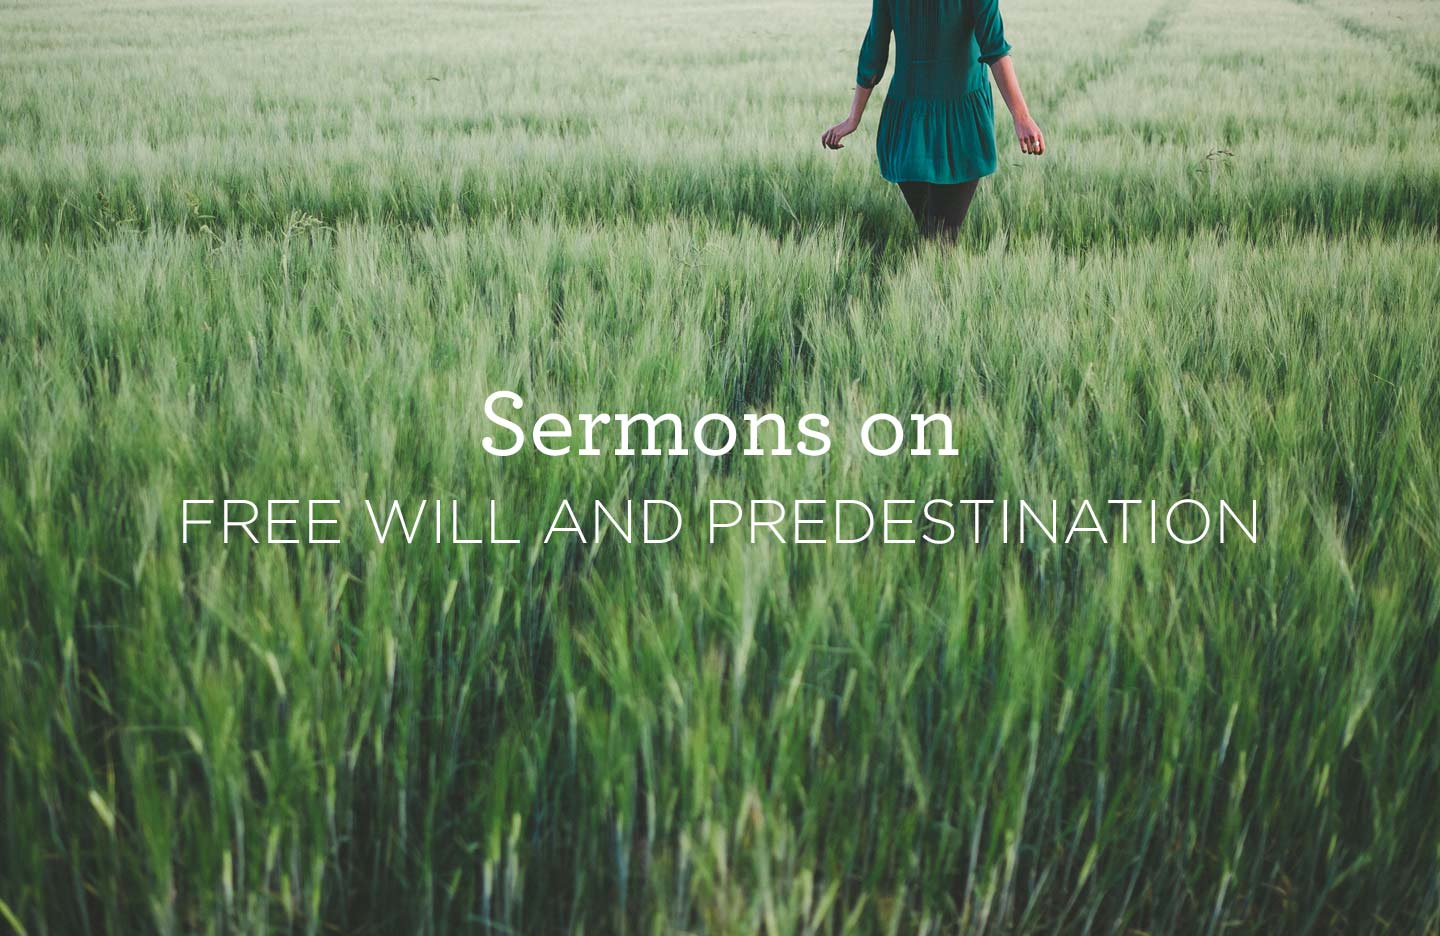 Sermons-on-Free-Will-and-Predestination